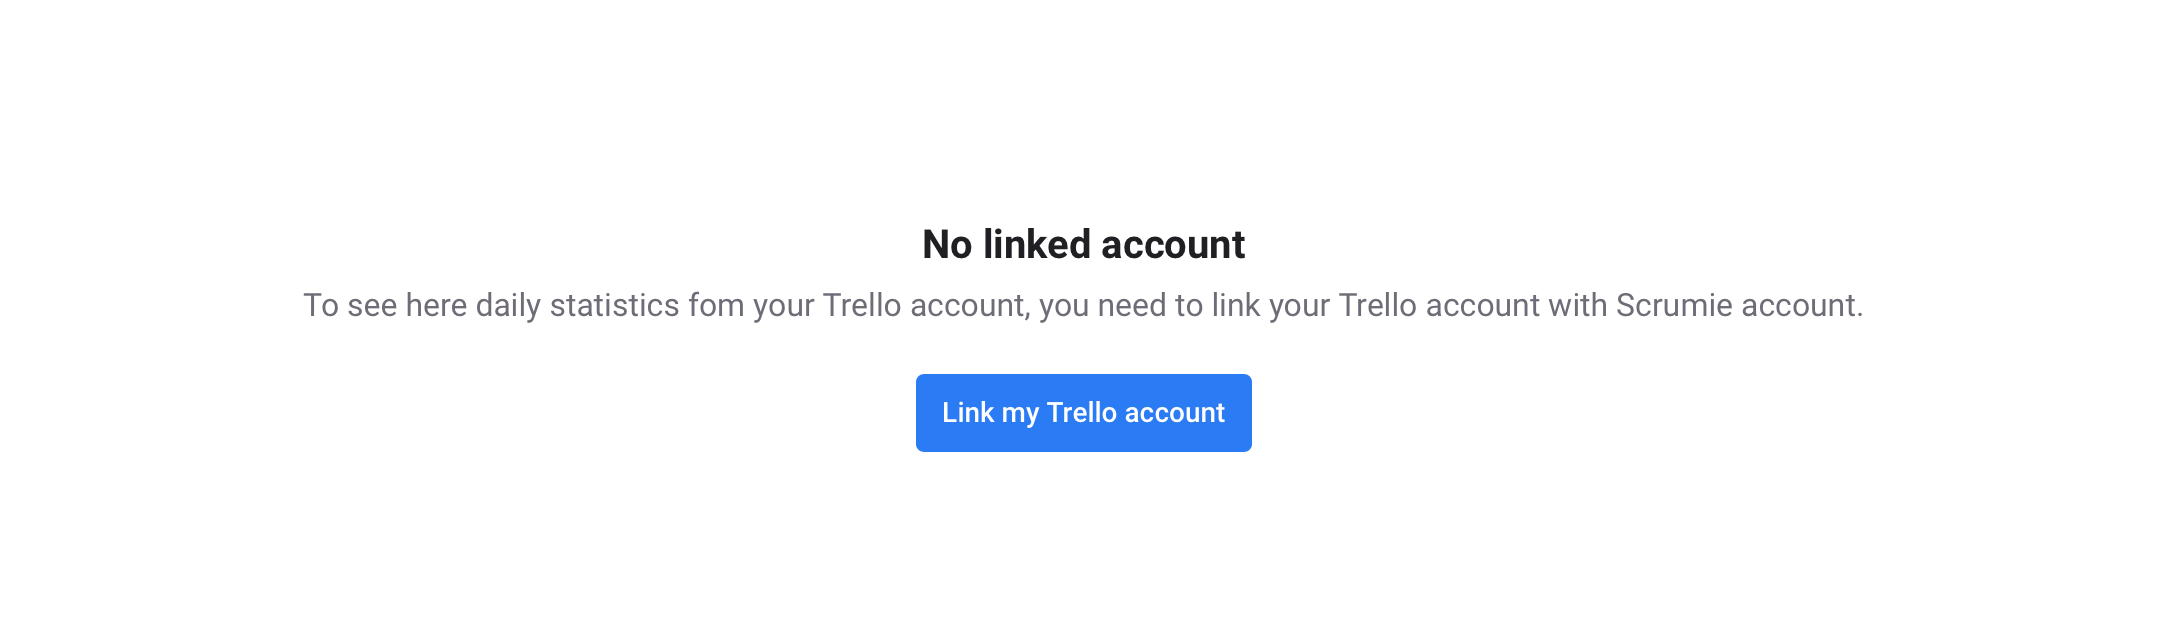 Linking Trello account - Scrumie